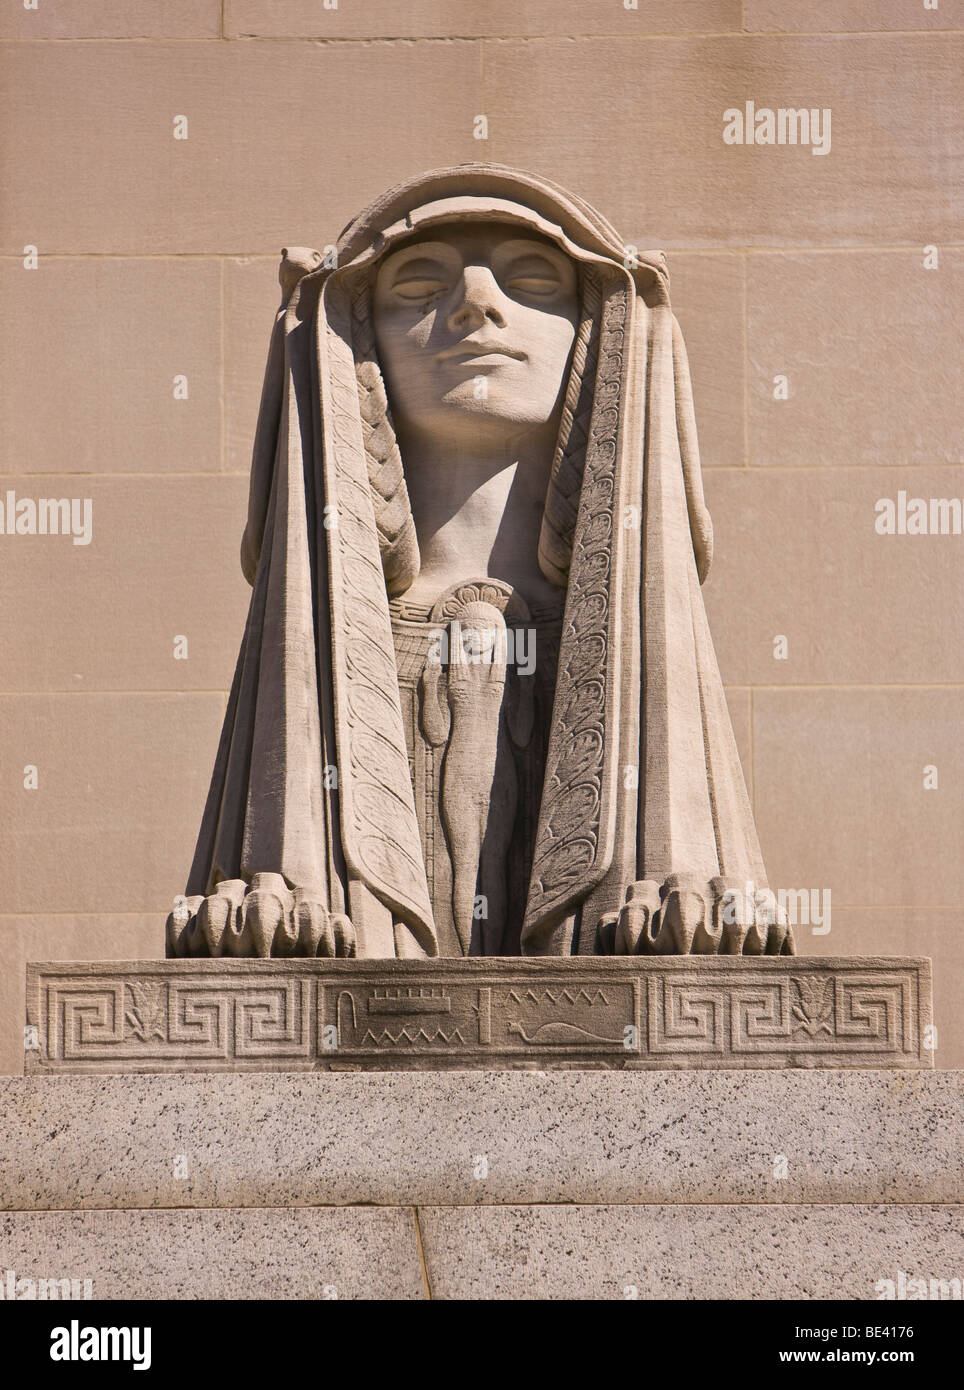 WASHINGTON, DC, USA - Sphinx at Scottish Rite of Freemasonry building, also known as the House of the Temple - Stock Image